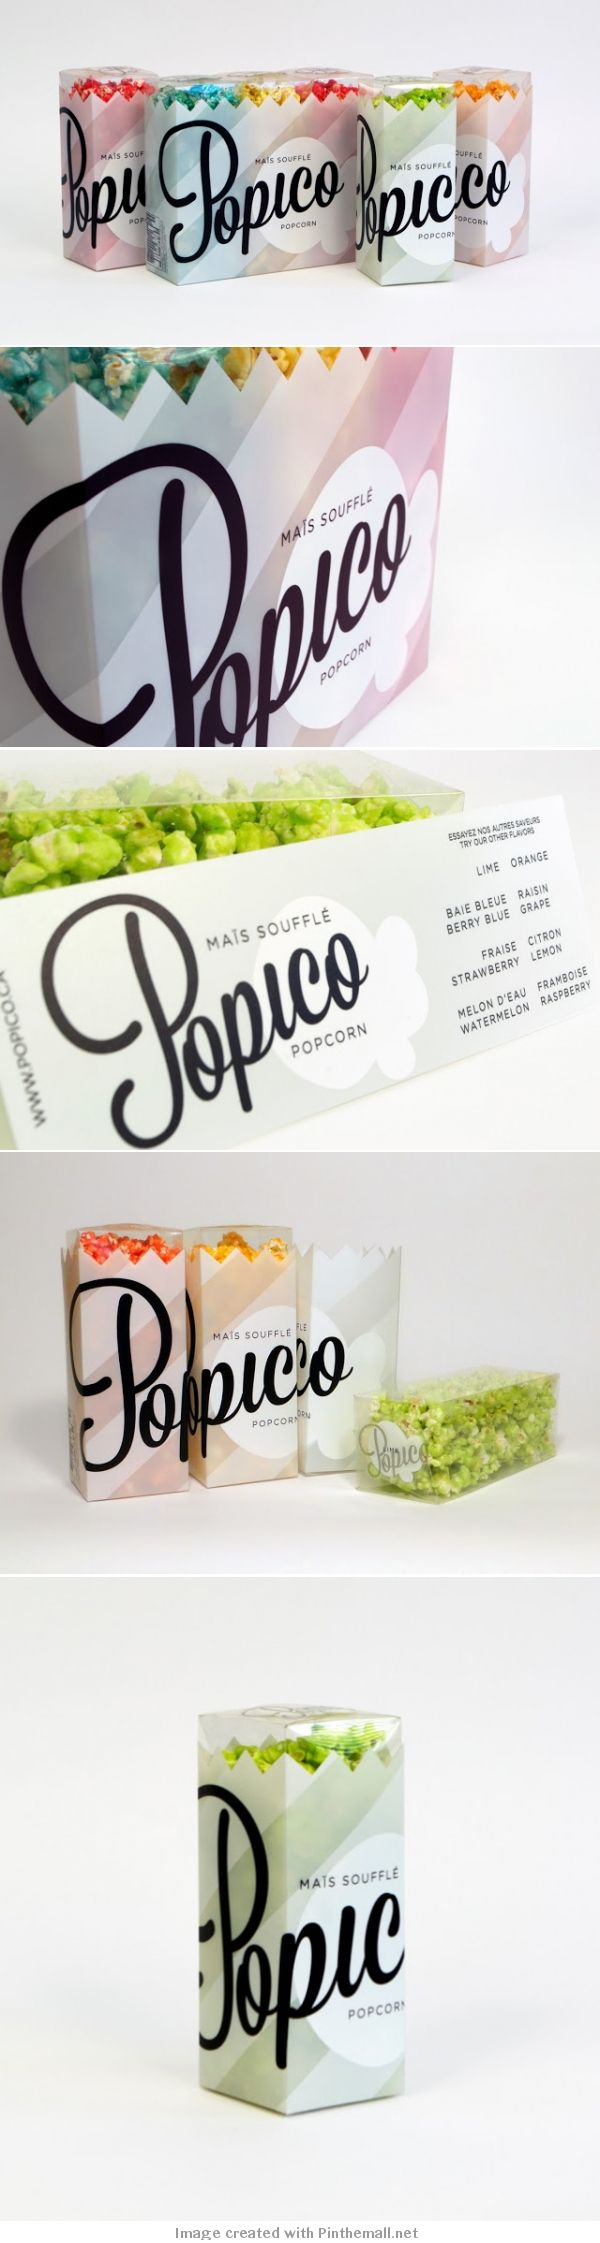 Popico Student Project let's have some popcorn packaging curated by Packaging Diva PD                                                                                                                                                                                 More